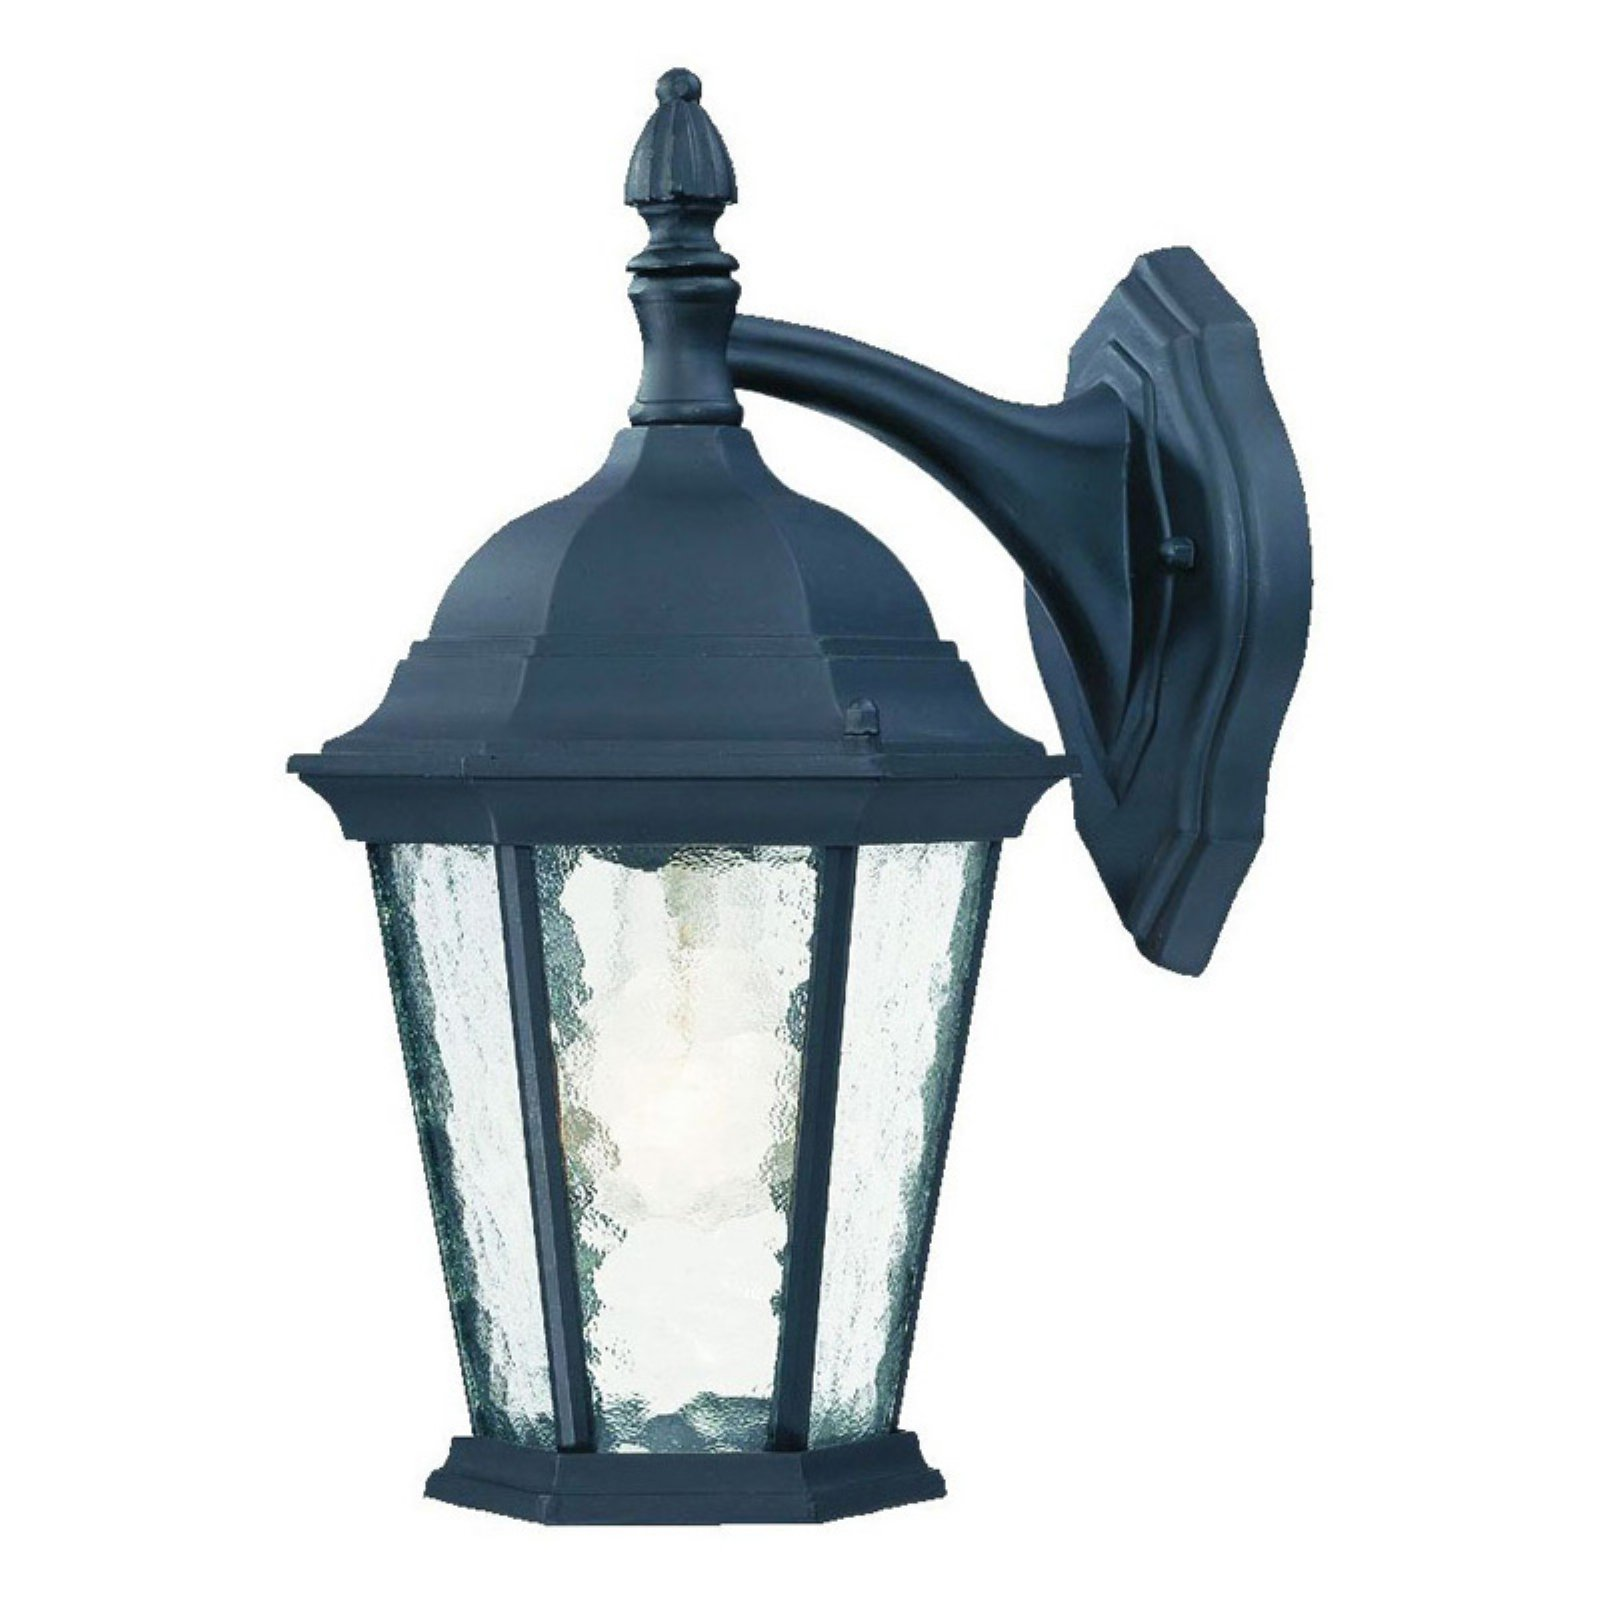 Acclaim Lighting Telfair 1 Light Outdoor Wall Mount Light Fixture